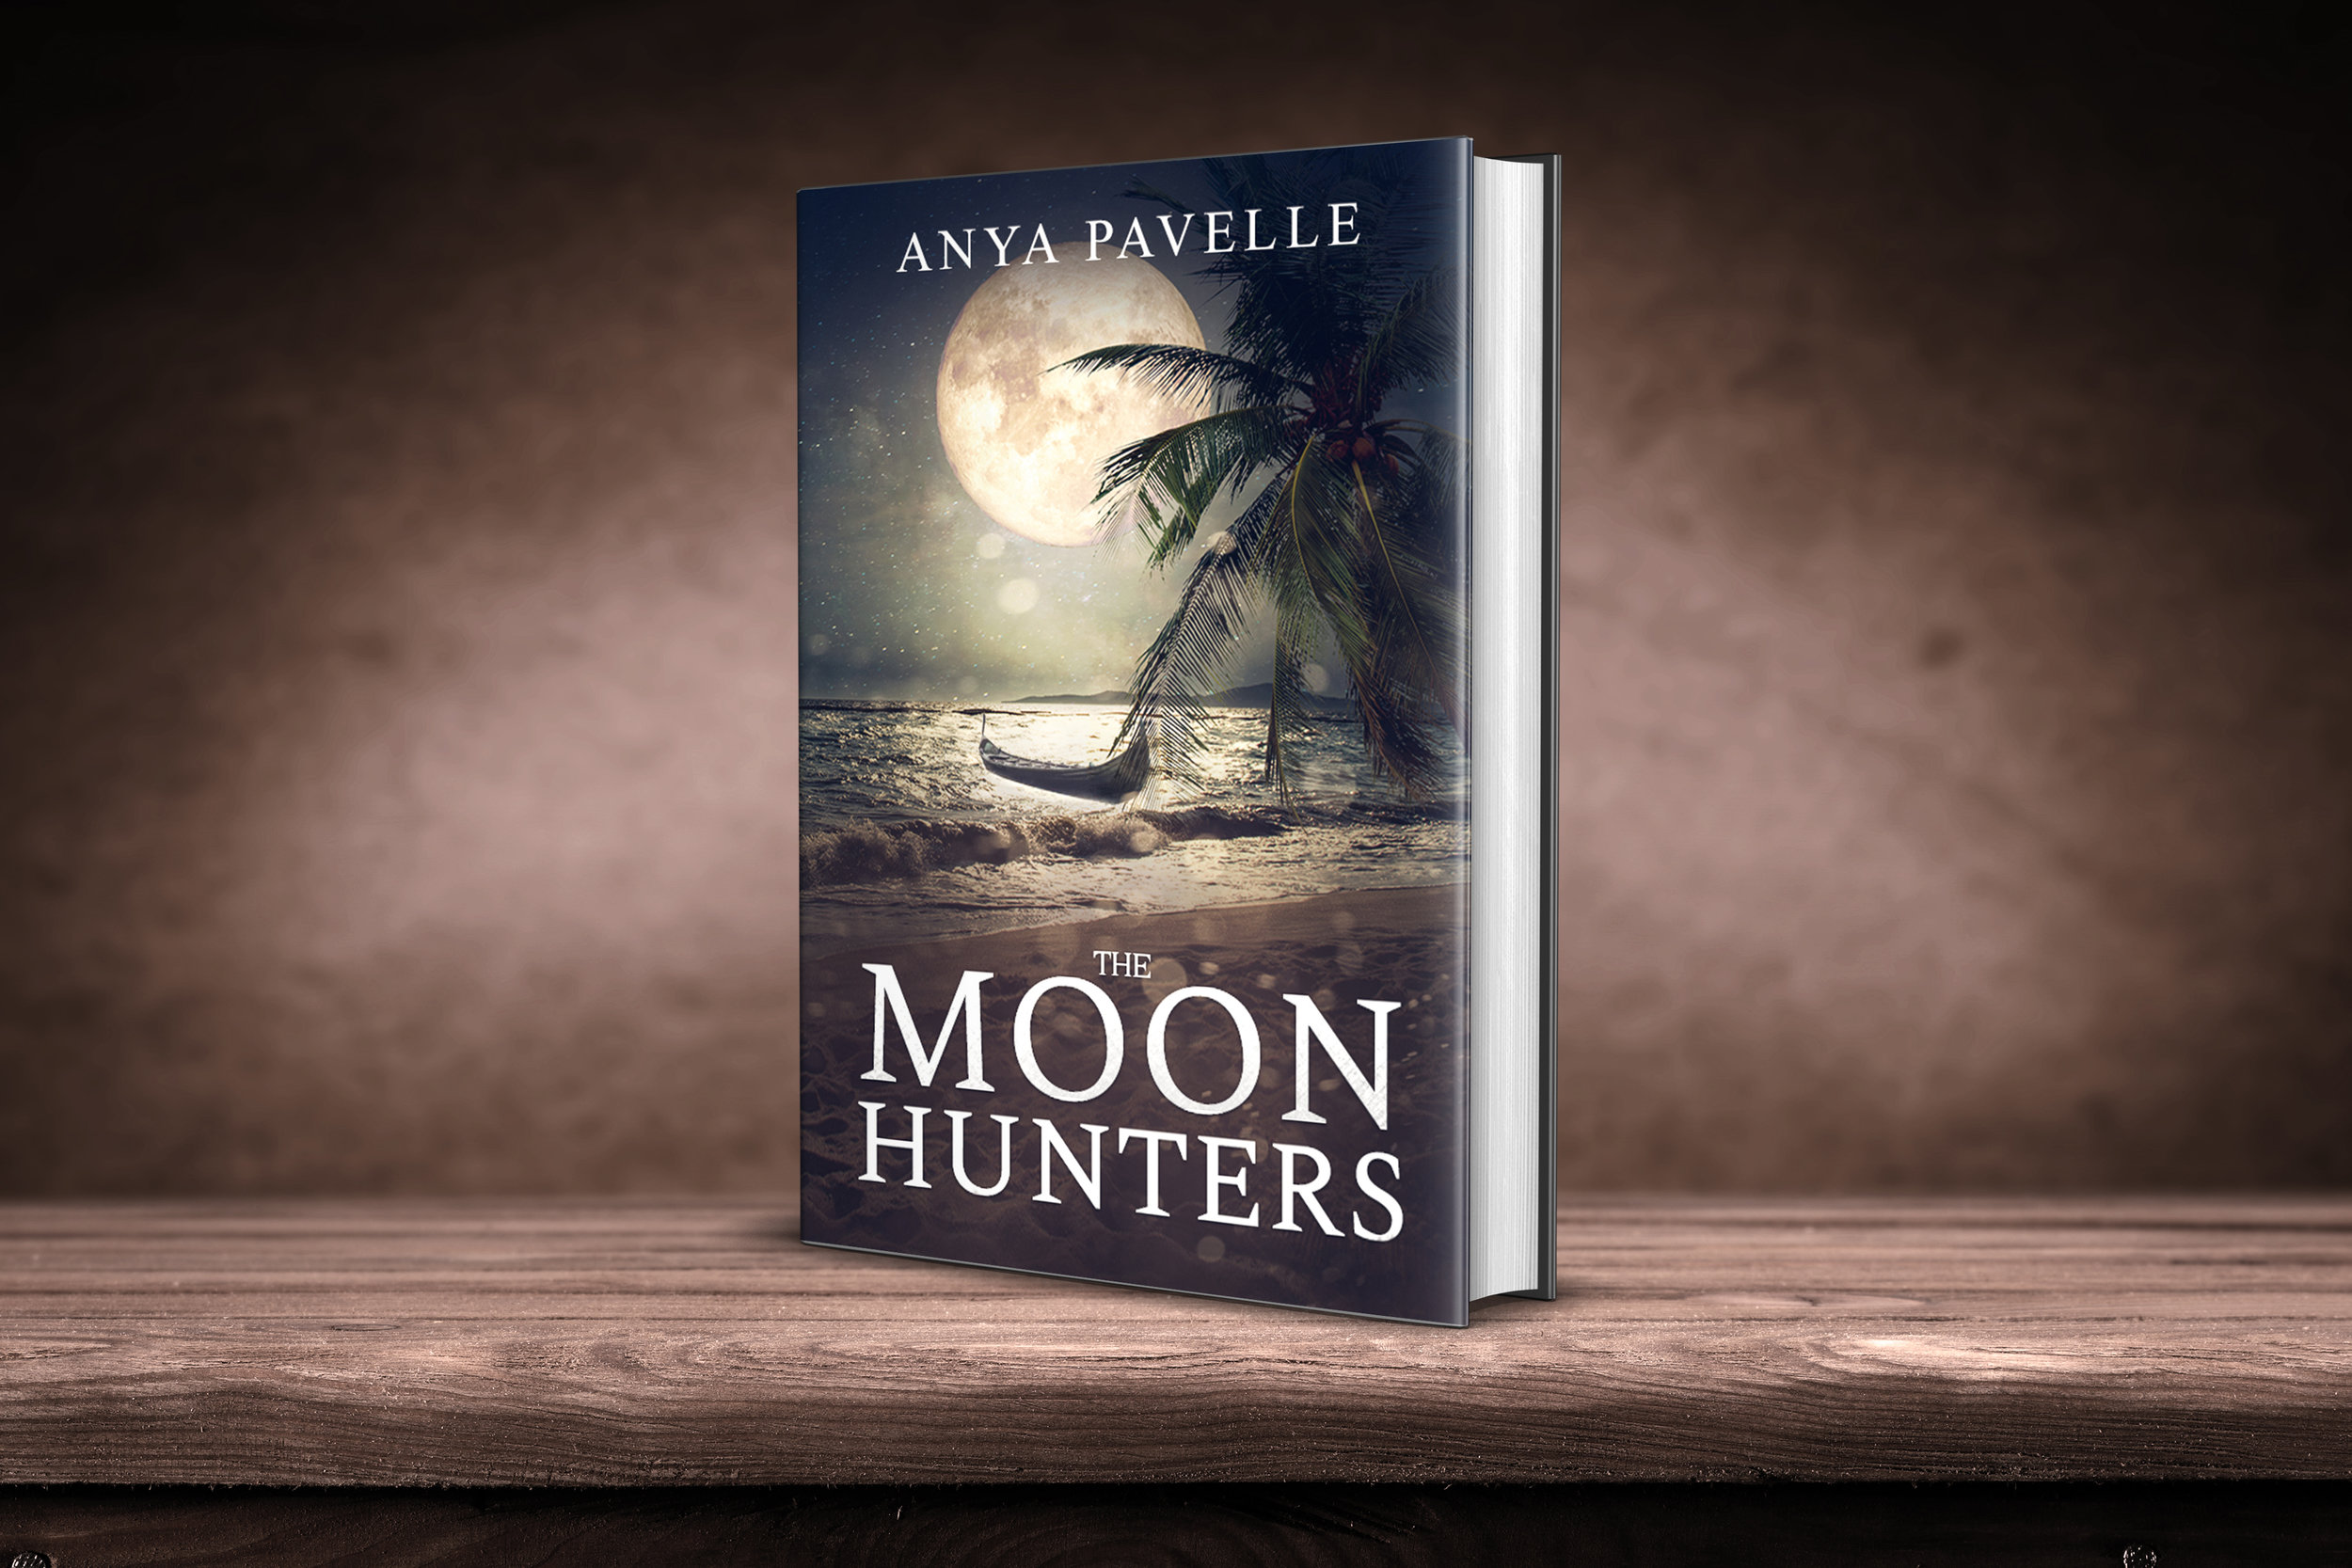 The cover was designed by the author, Anya Pavelle.